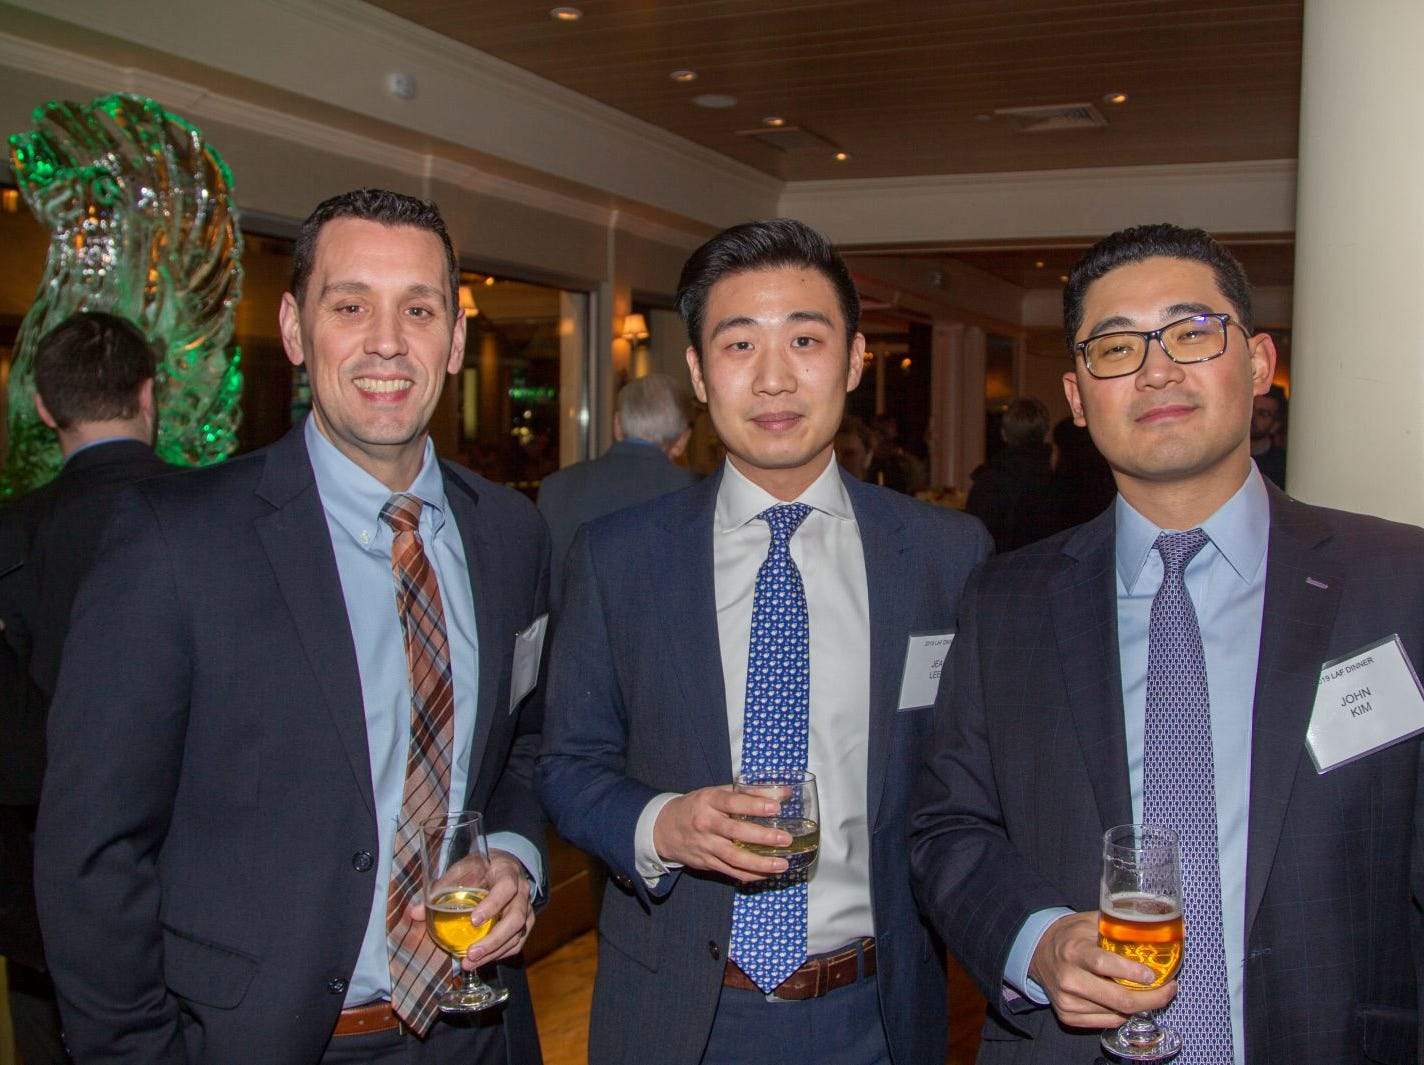 Francis Rial, Jea Lee, John Kim. Eva's Village hosted its second annual Lawyers, Accountants and Financial Professionals Benefit Dinner at Westmount Country Club in Woodland Park. 02/21/2019